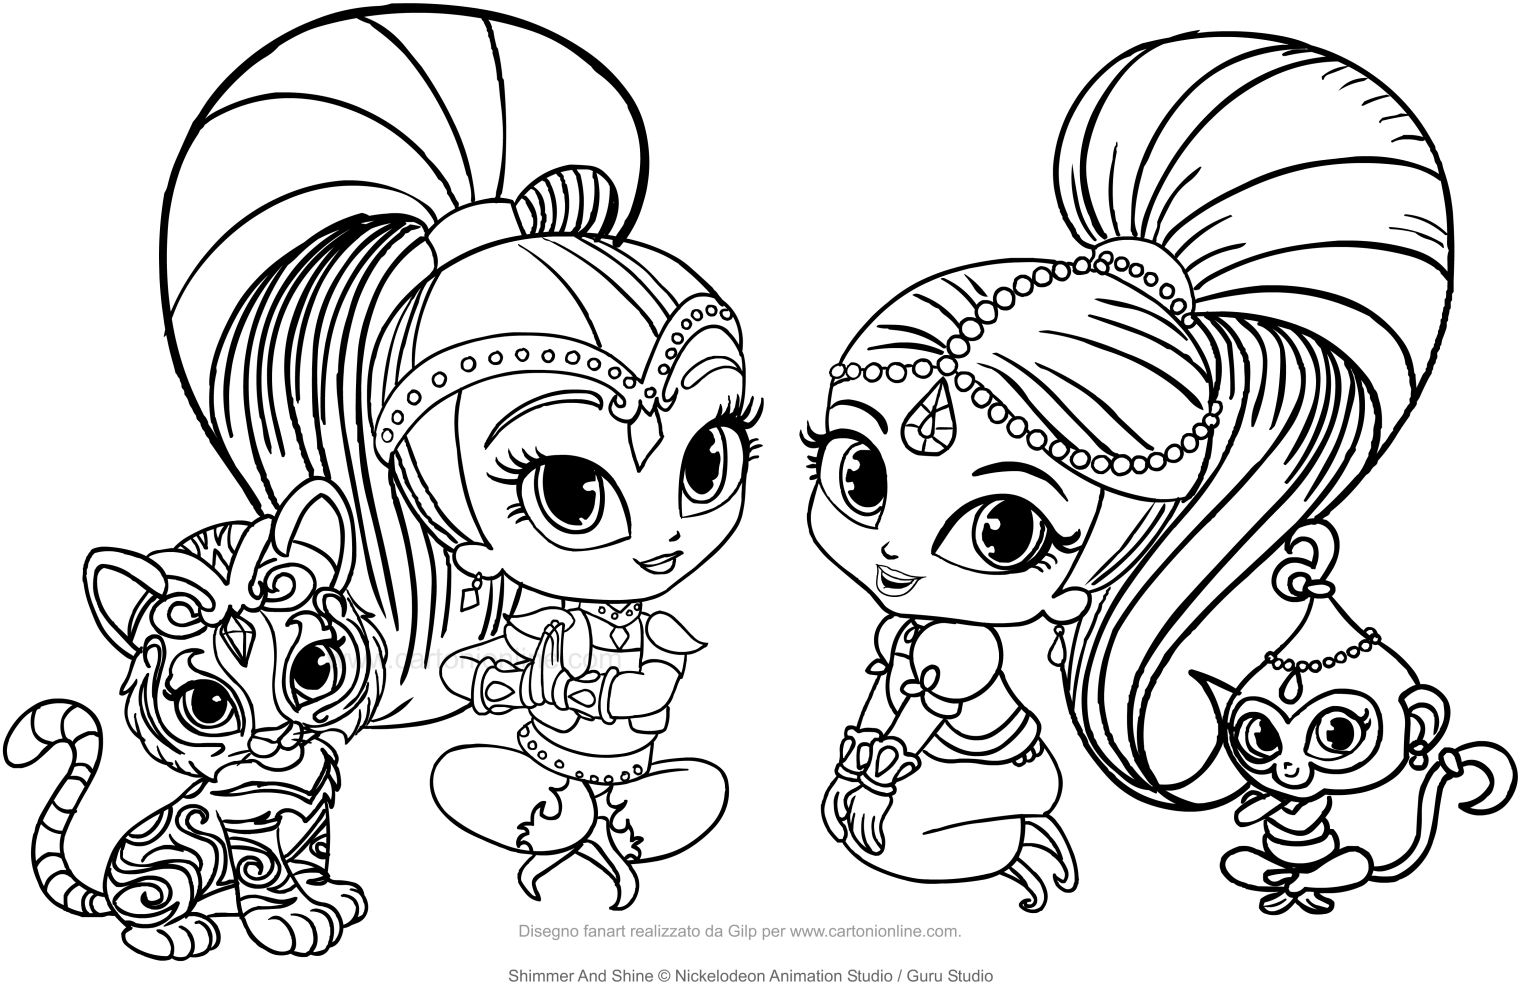 22 Amazing Picture Of Bubble Guppies Coloring Pages Davemelillo Com Bubble Guppies Coloring Pages Nick Jr Coloring Pages Bubble Guppies Characters